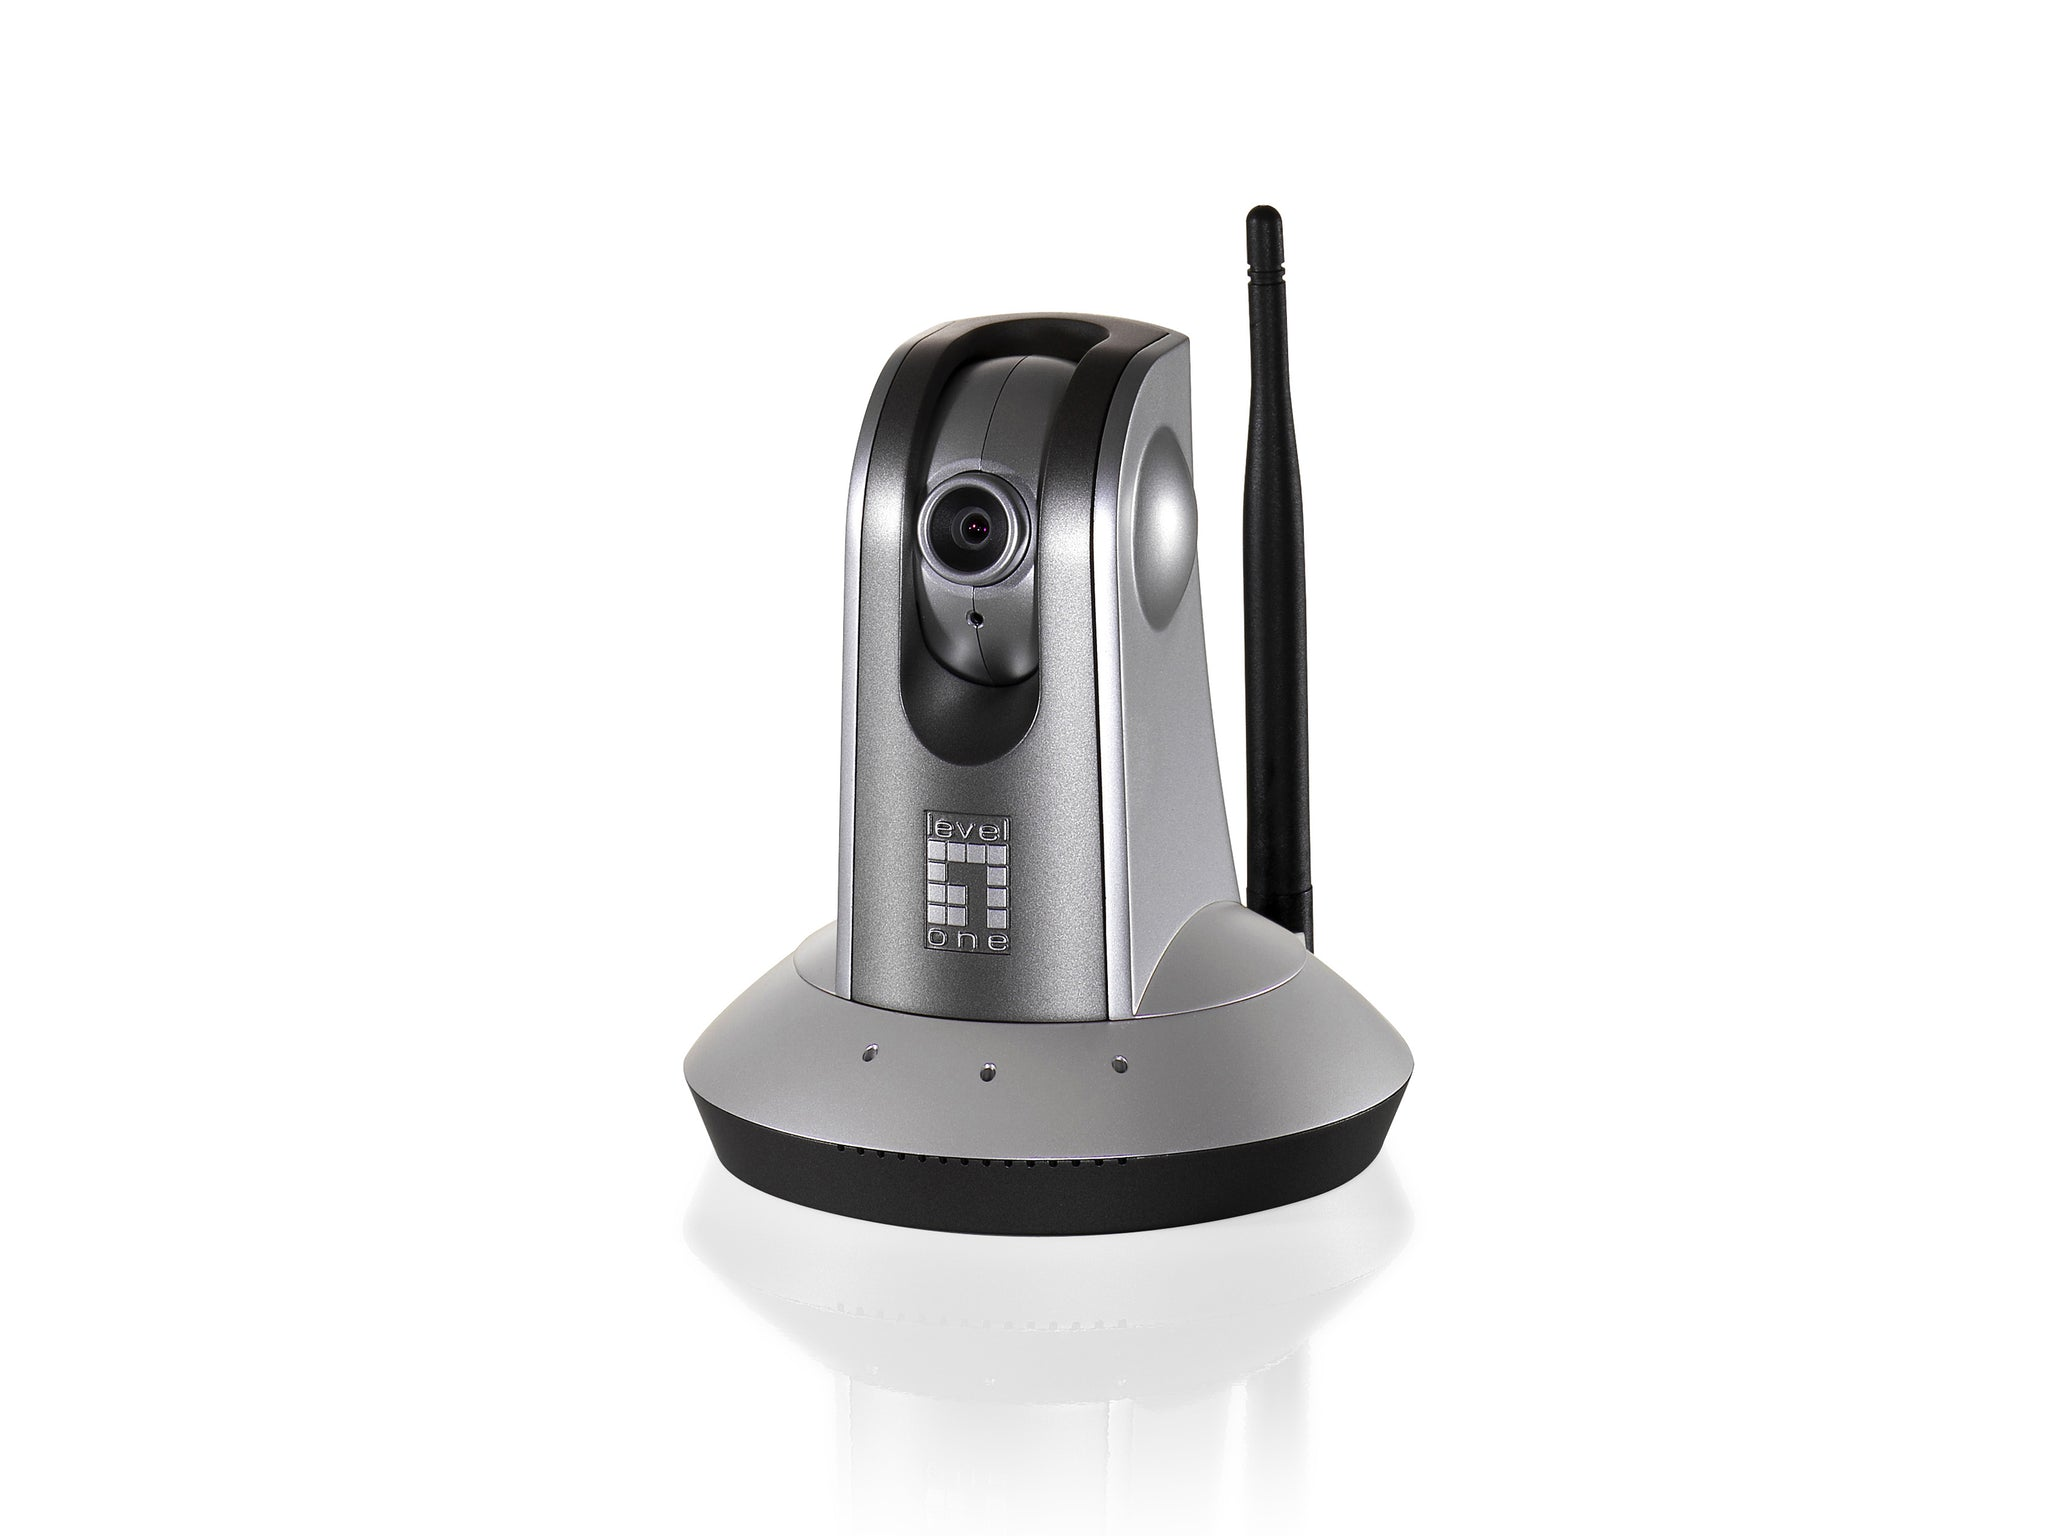 WCS-2060 WIRELESS G P/T IP CAMERA  ONLY WORKS WITH IE!!!